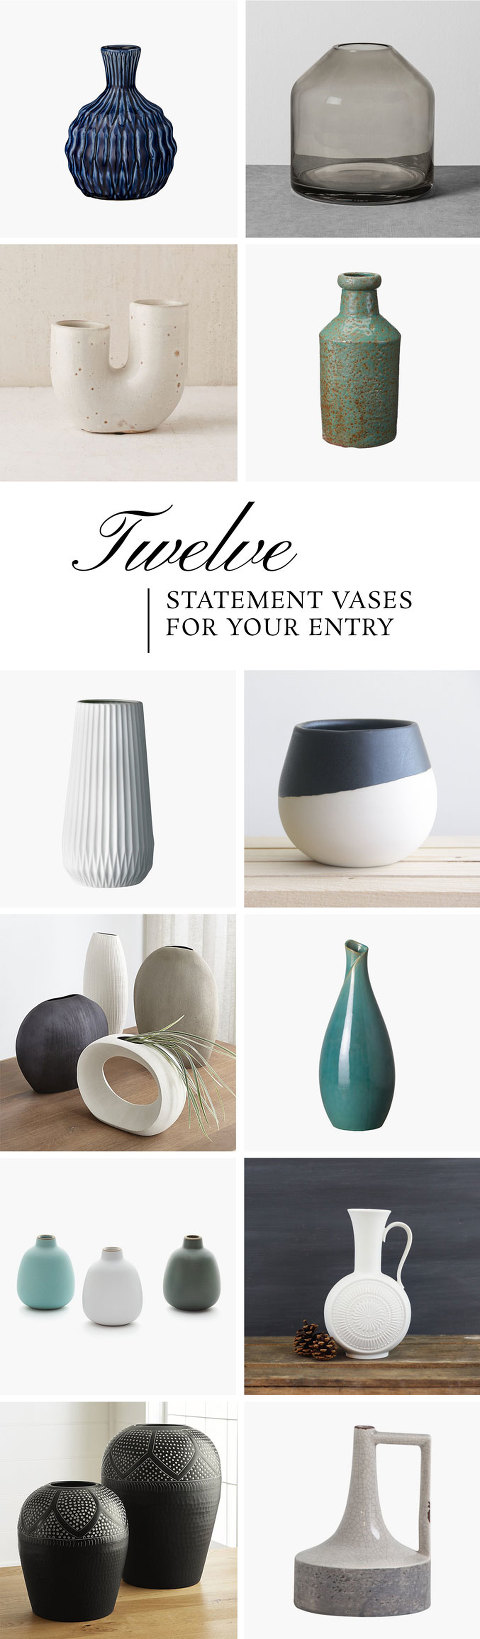 12 Statement Vases For Your Entry Table